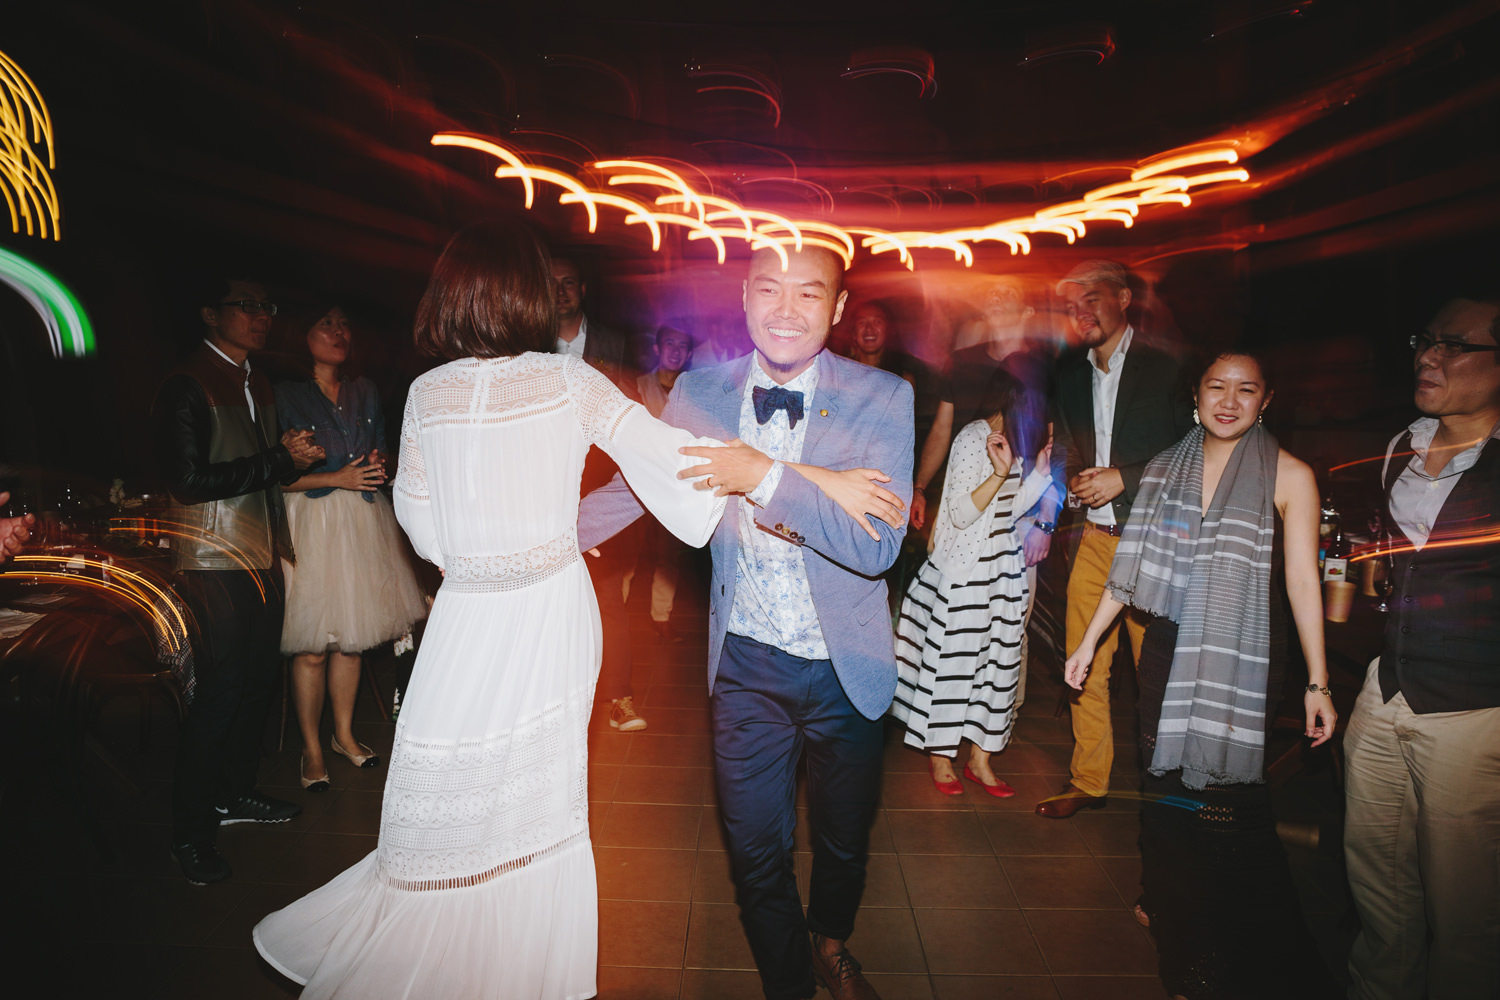 260-Barn_Wedding_Australia_Sam_Ting.jpg